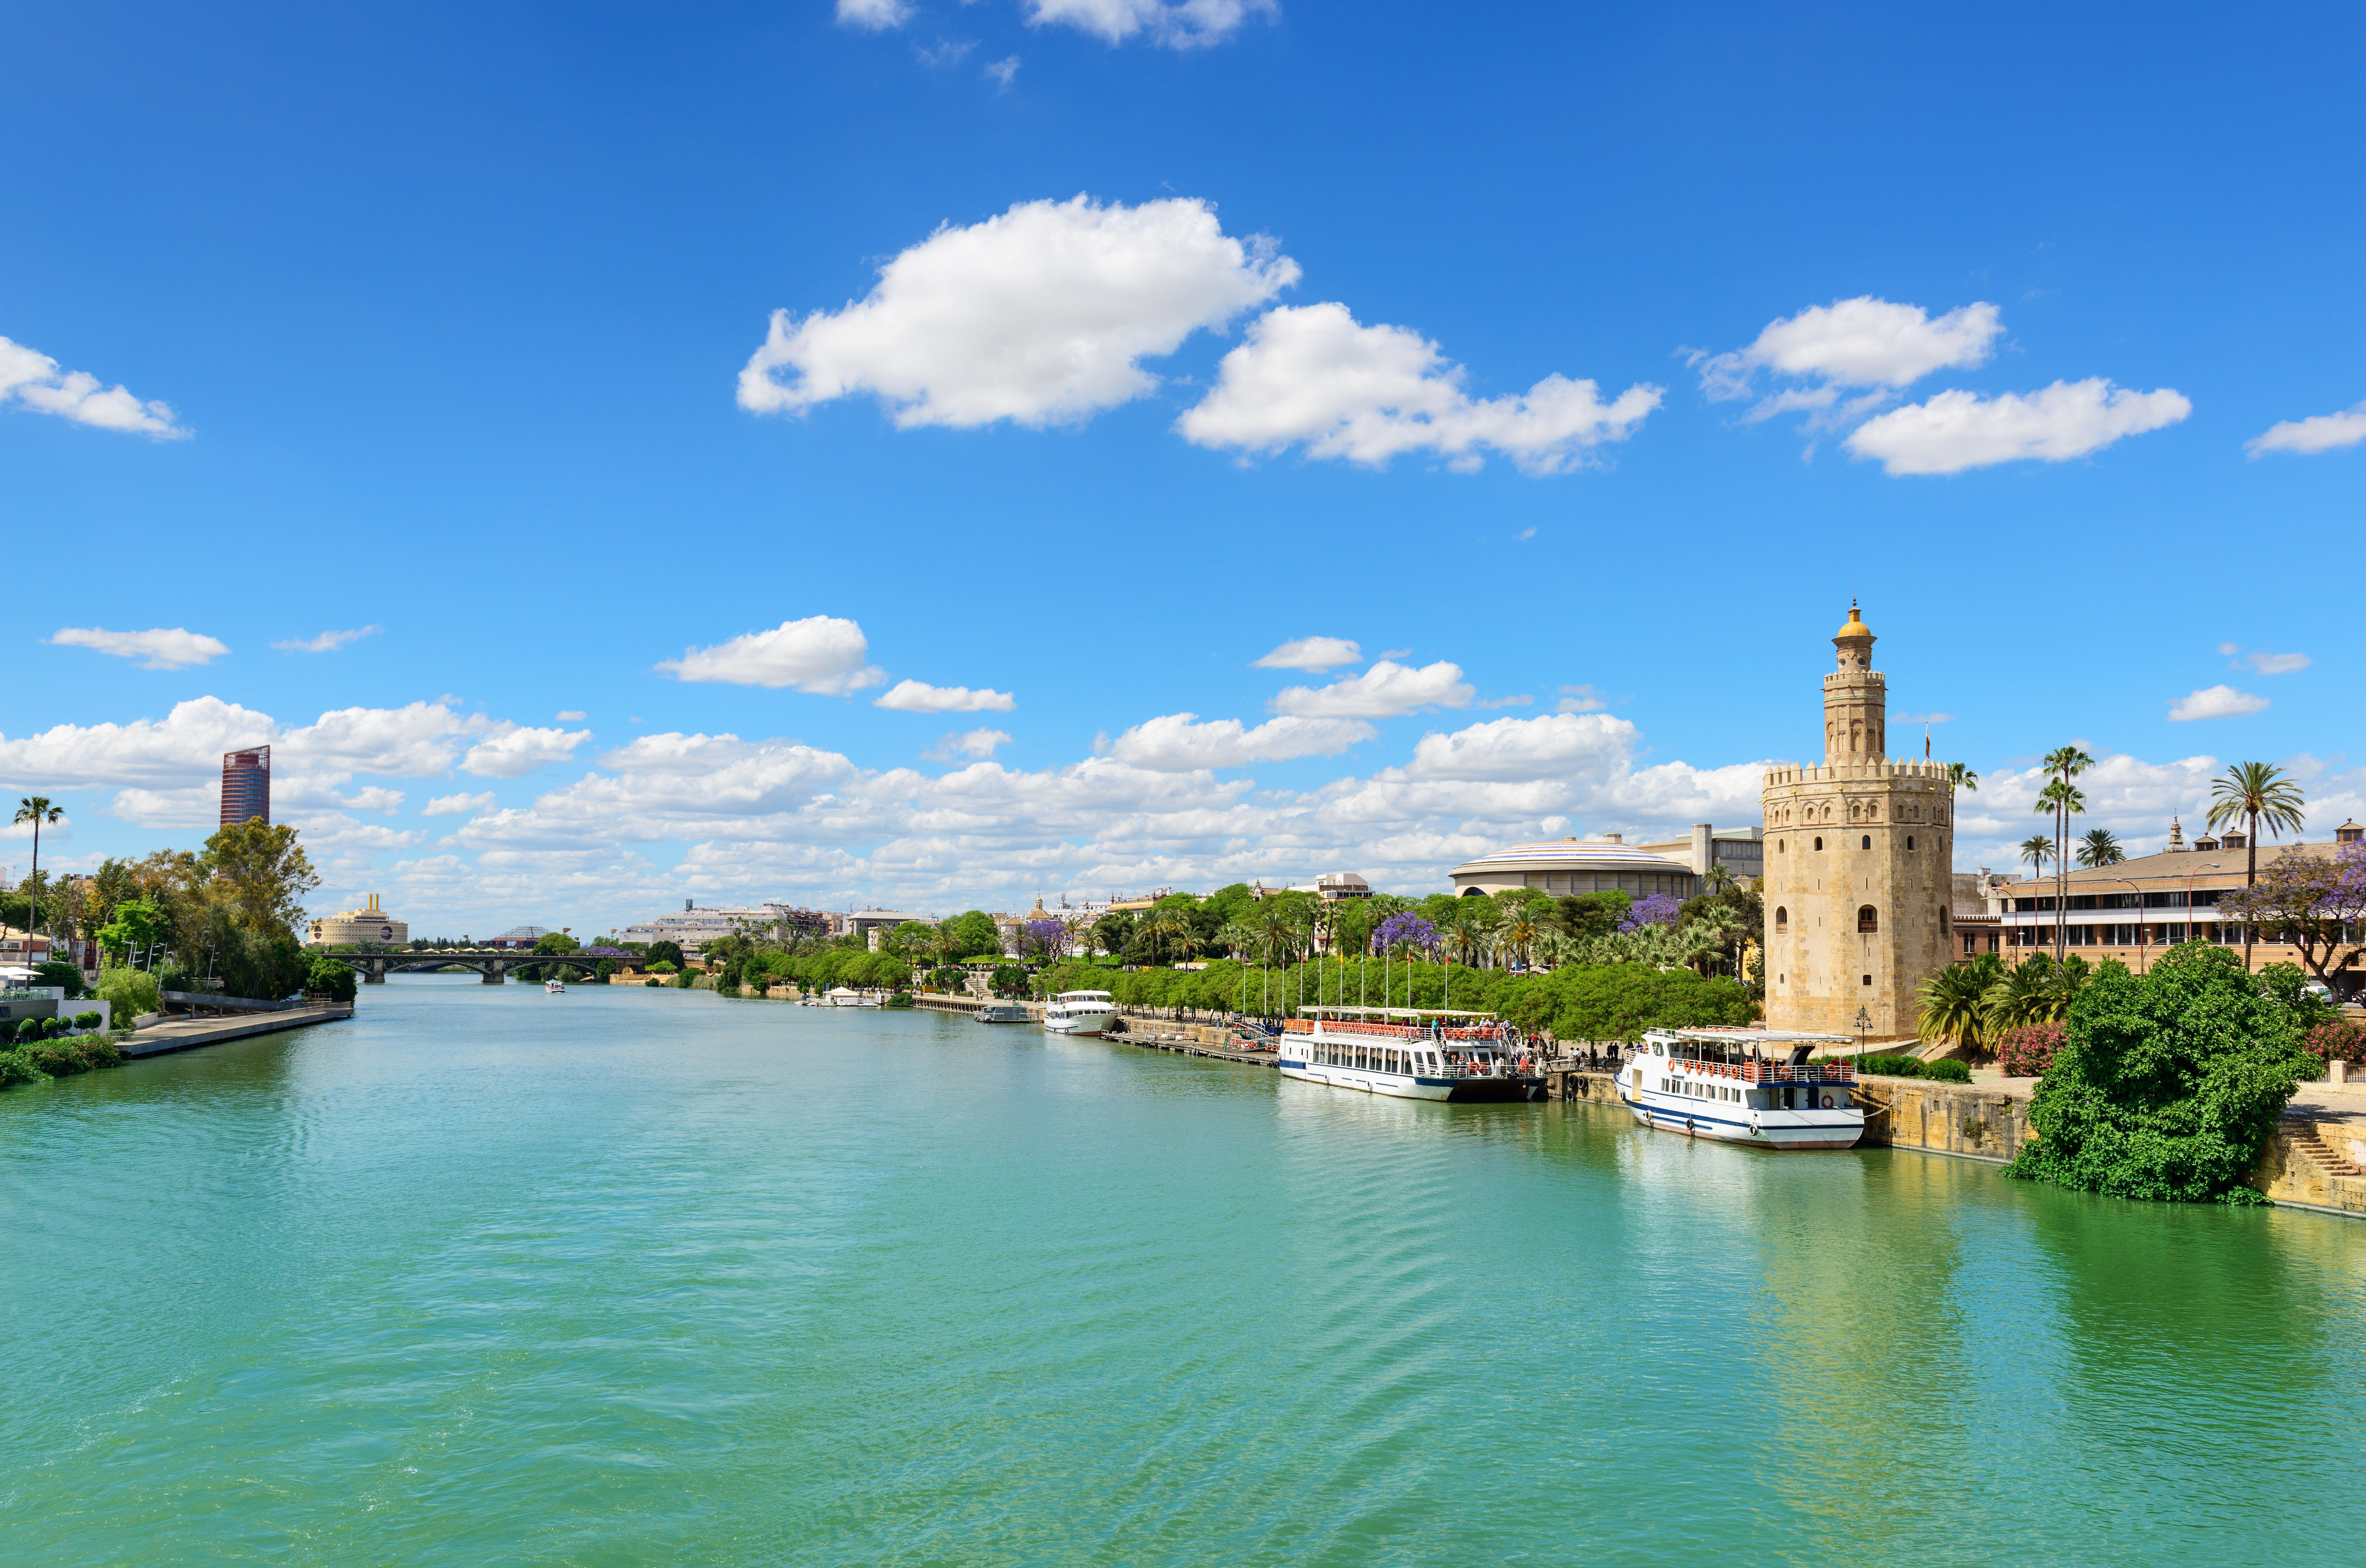 The Guadalquivir River and the Golden Tower, a militarylookout spot